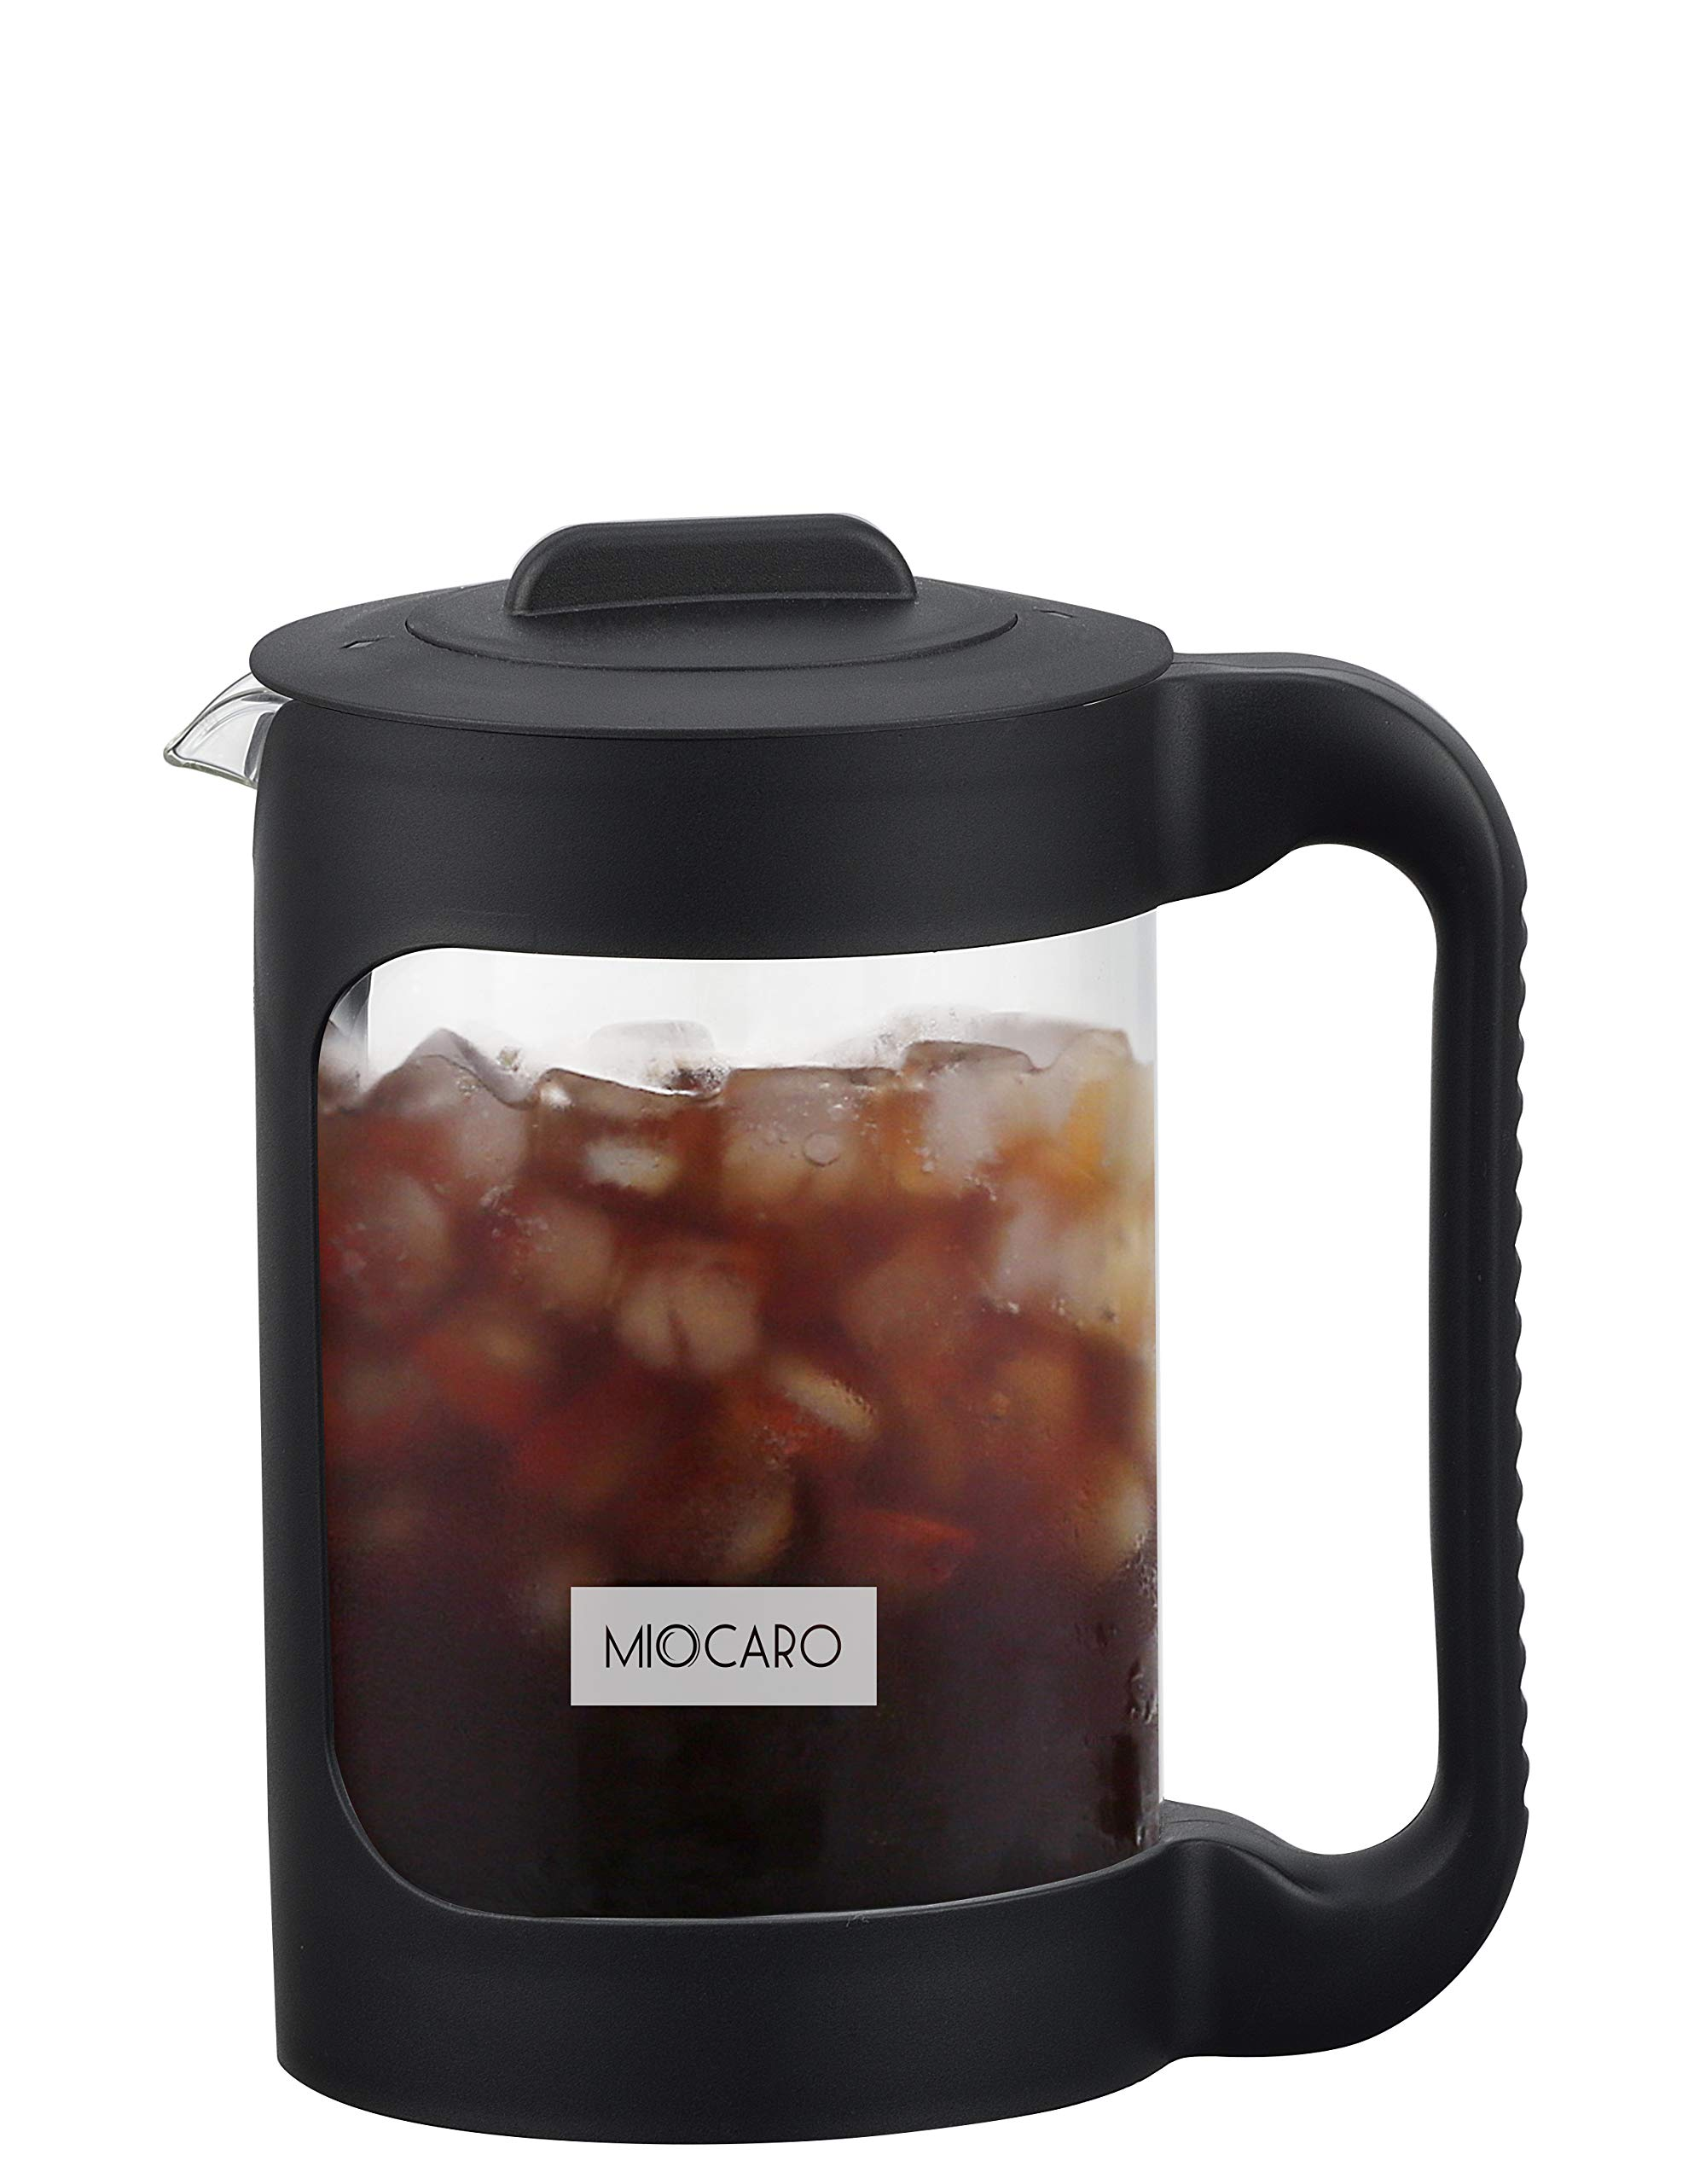 MIOCARO Cold Brew Ice Coffee Maker Stainless Steel Strainer Large 52 Oz Juice Tea Cooler